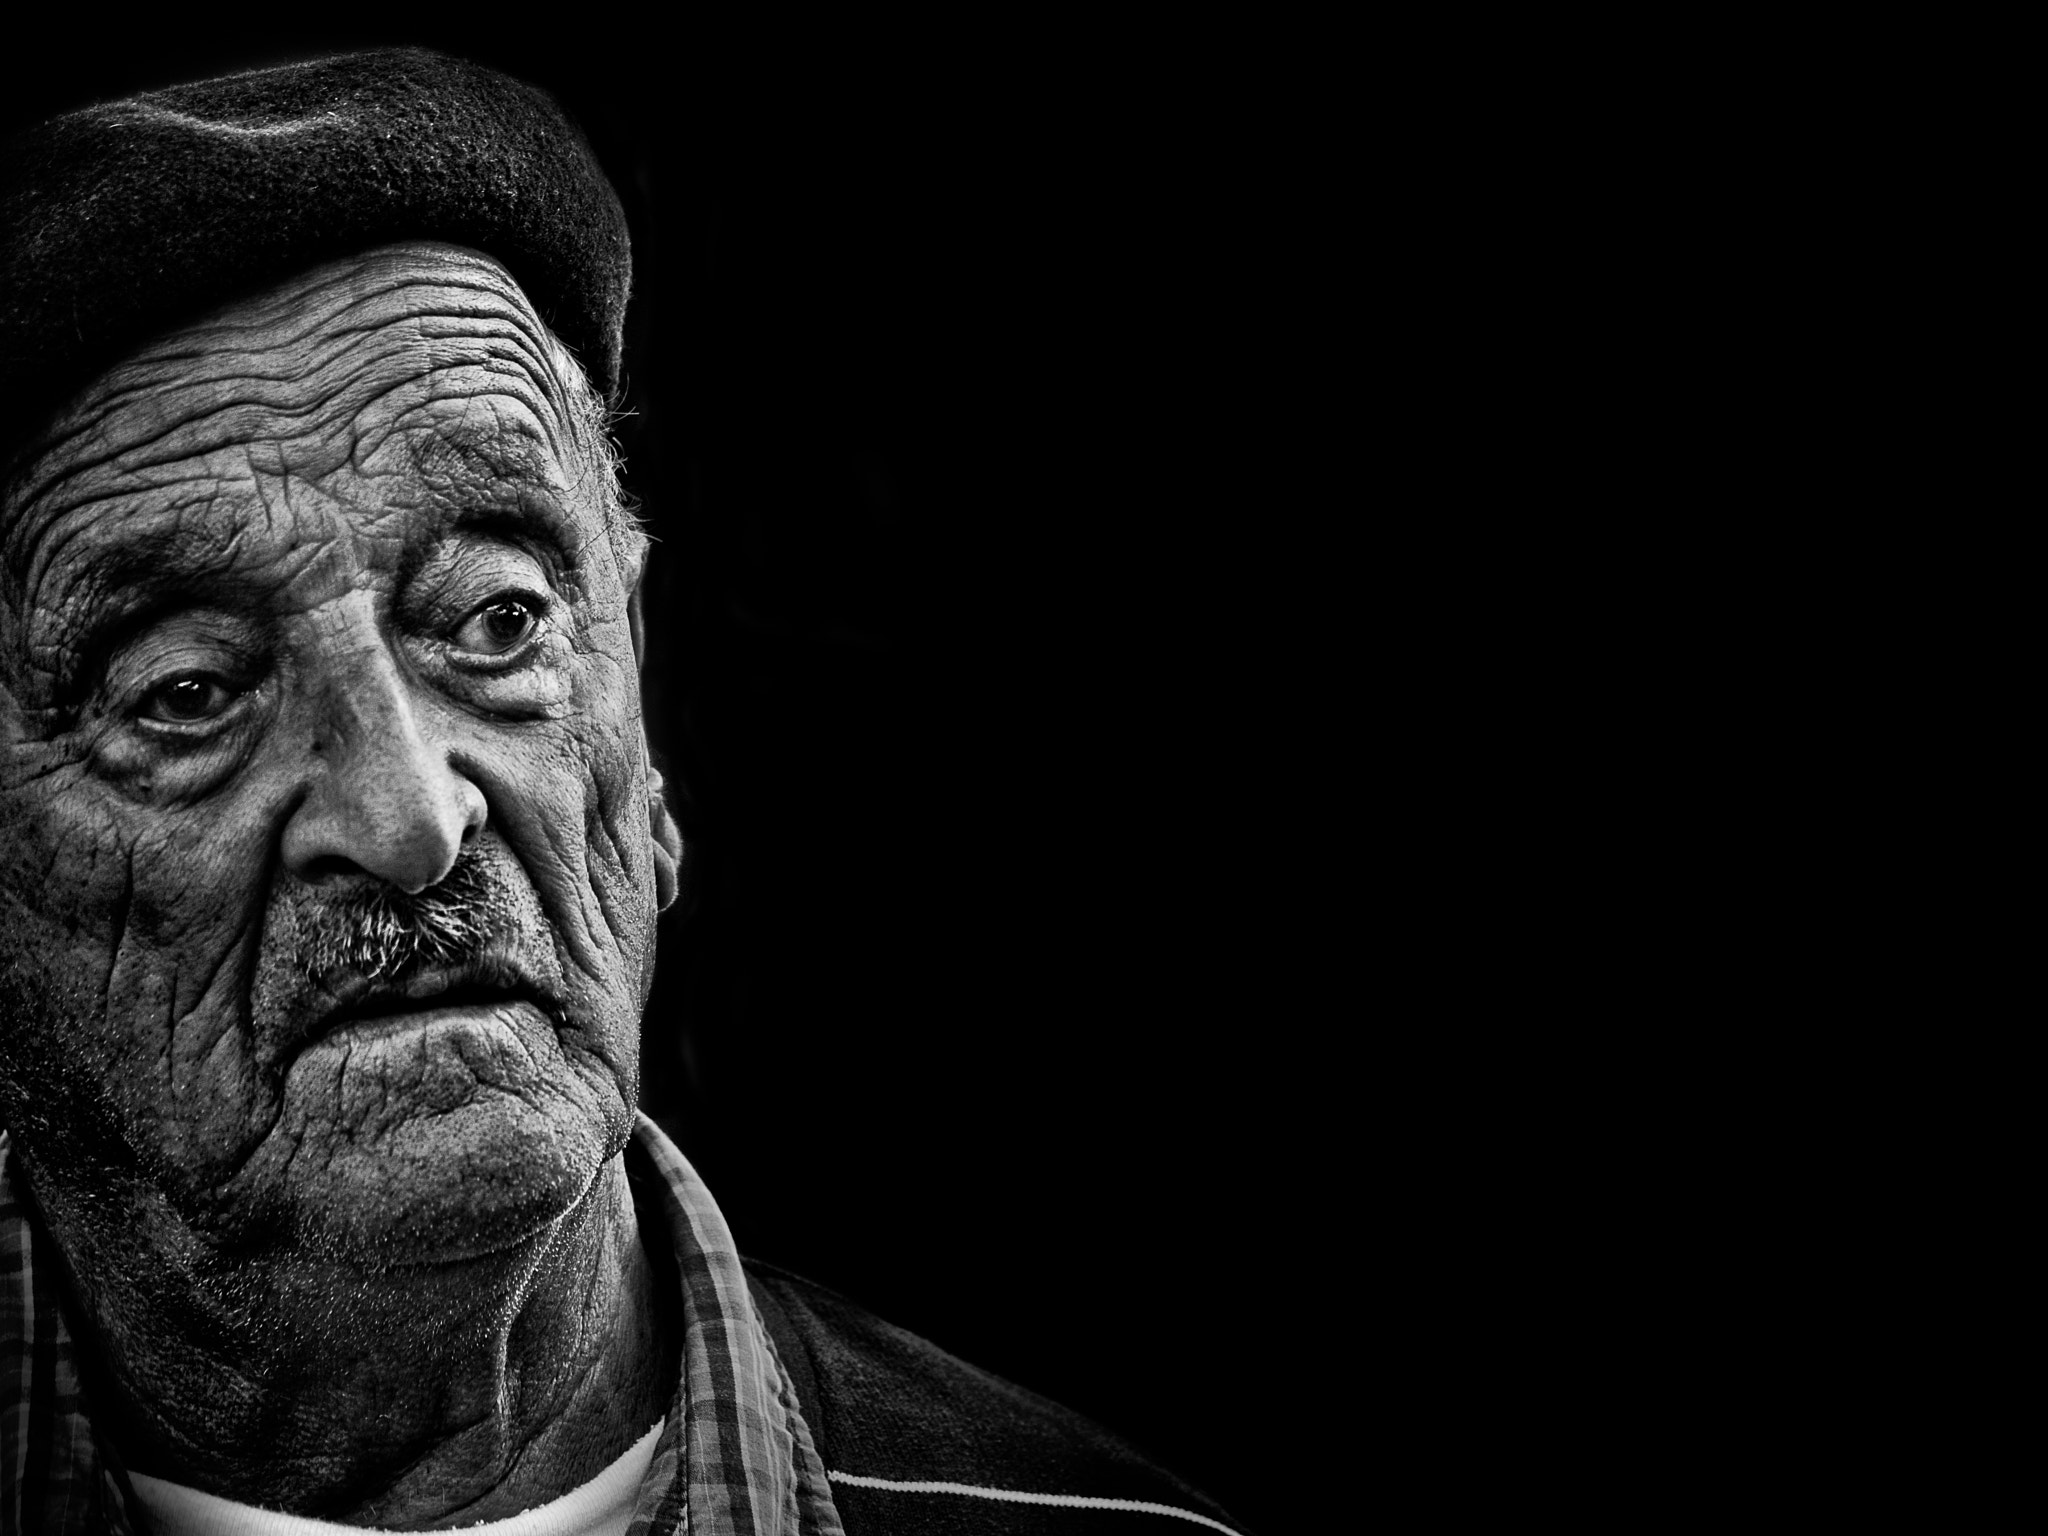 Photograph Henri wondering where all the quality croissants went by Alan Shapiro on 500px